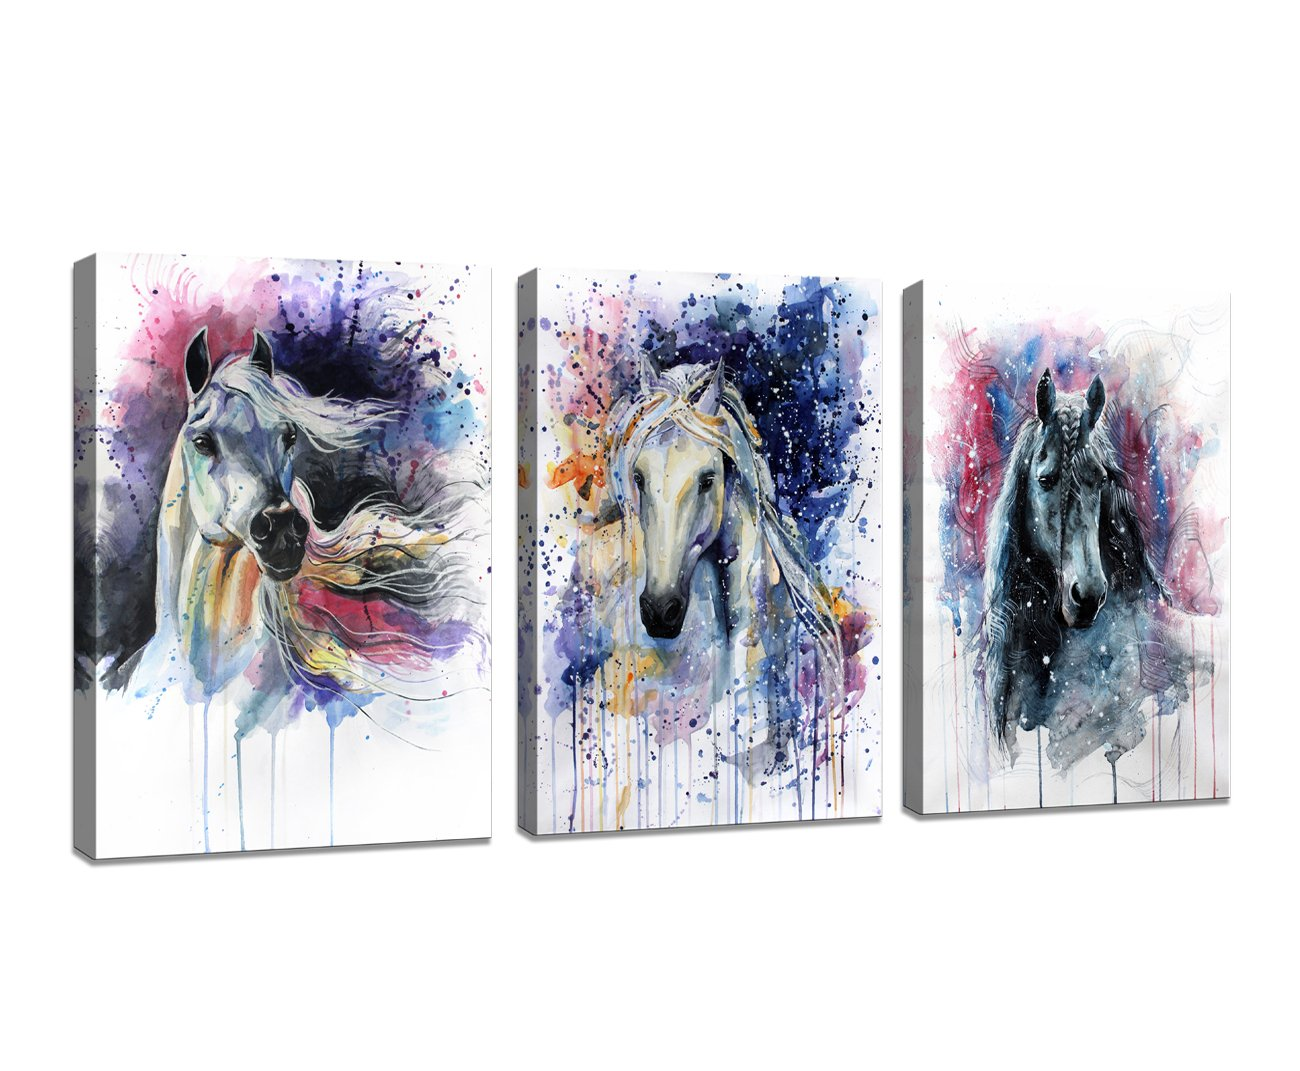 DZL Art D70234 Canvas Wall Art Horse Animal Painting Prints on Canvas Framed Ready to Hang-3 Panels Watercolor Horses Prints Fine Art for Home Wall Decor - Size: 12inch x16inch x 3pcs (30x40cm*3pcs), total 3 panels, framed and ready to hang A perfect wall decorations paintings for living room, bedroom, kitchen, office, Hotel, dining room, office, bar etc.. Due to different brand of monitors, actual wall art colors may be slightly different from the product image. Fast shipping and zero risk. 30 days 100% refund guarantee without any reason after receipt. - wall-art, living-room-decor, living-room - 7175mTC8AqL -